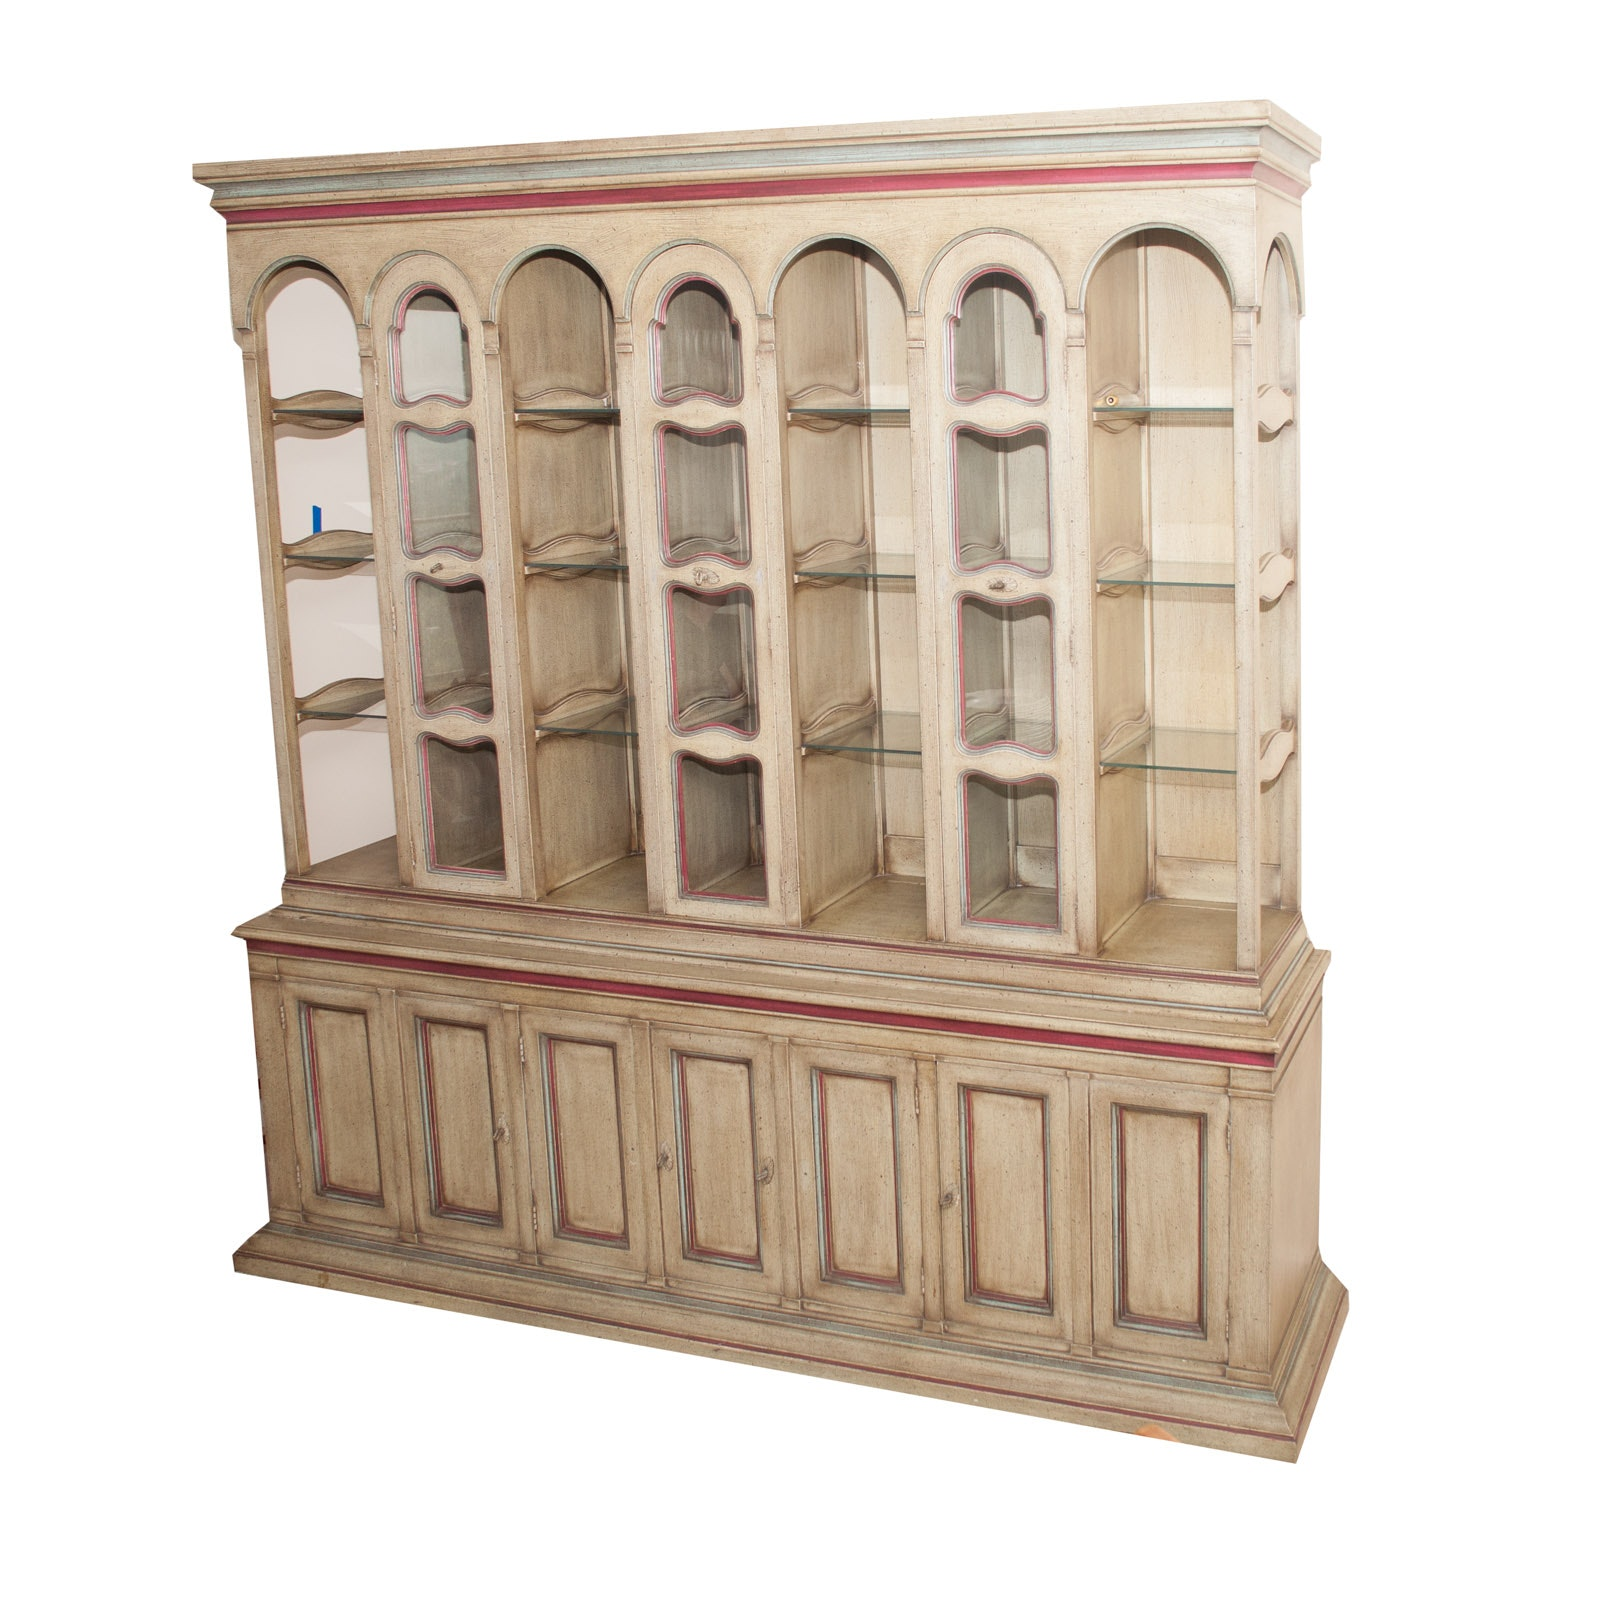 Renaissance Revival Style China Cabinet by Dorchester House